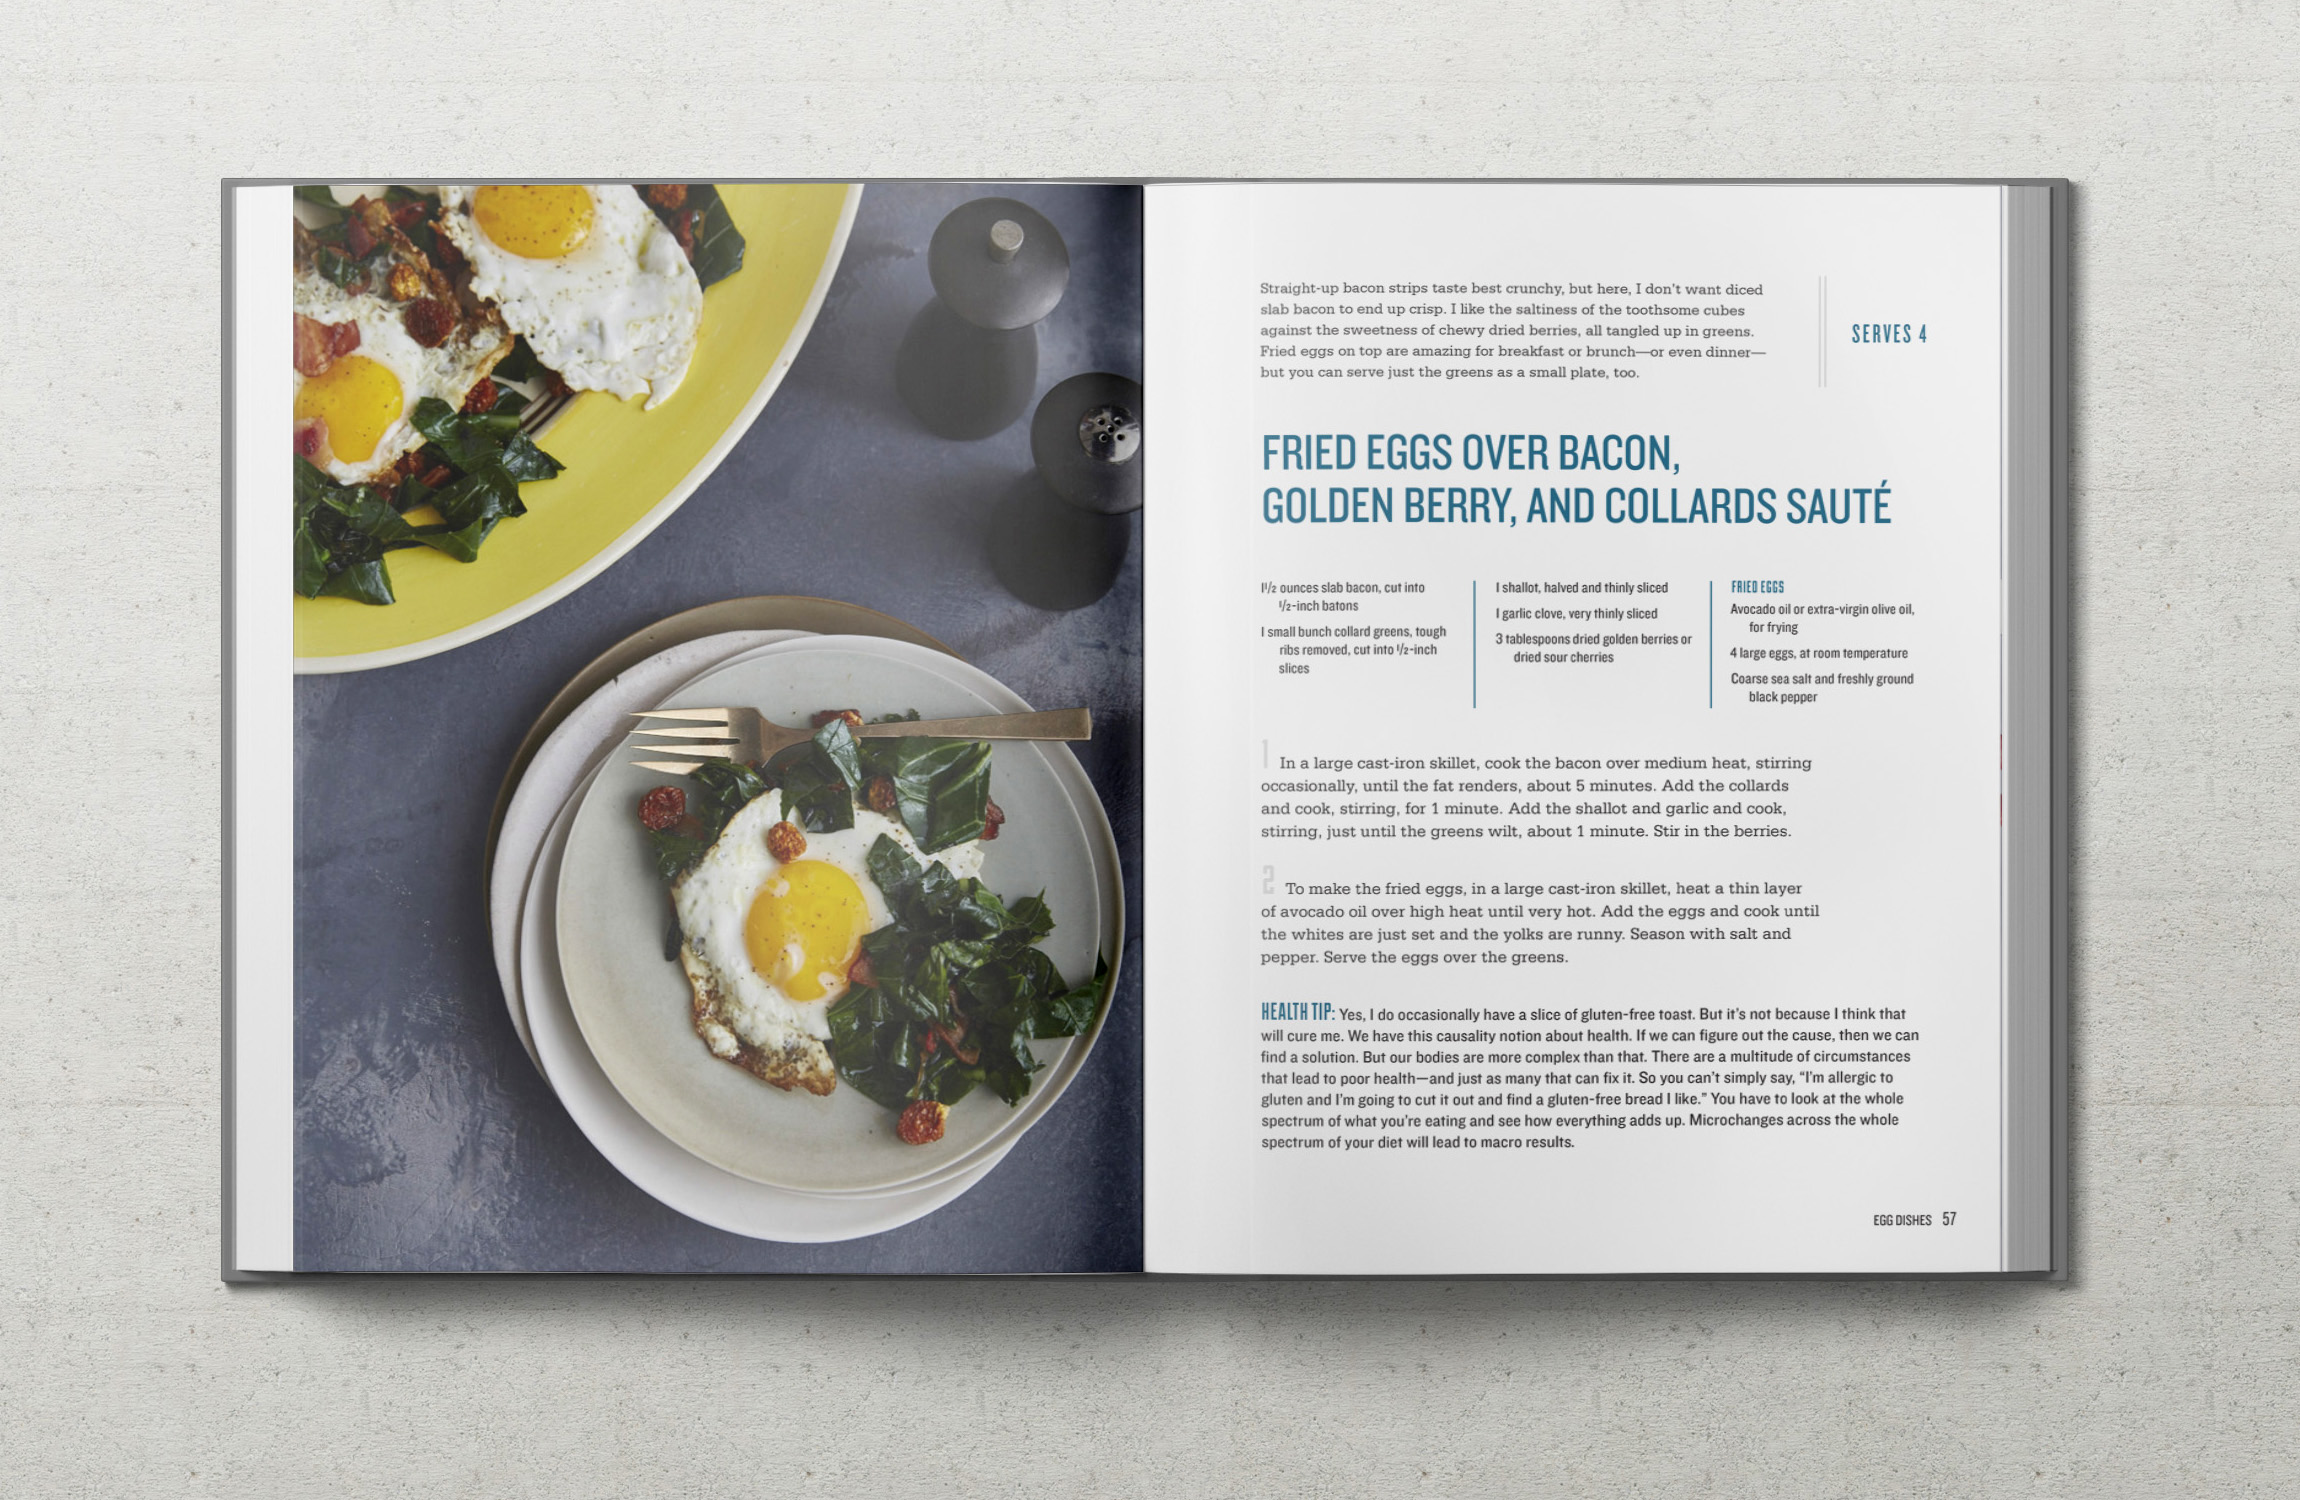 Real Food Heals recipe for Fried Eggs Over Bacon, Golden Berry and Collards Sauté